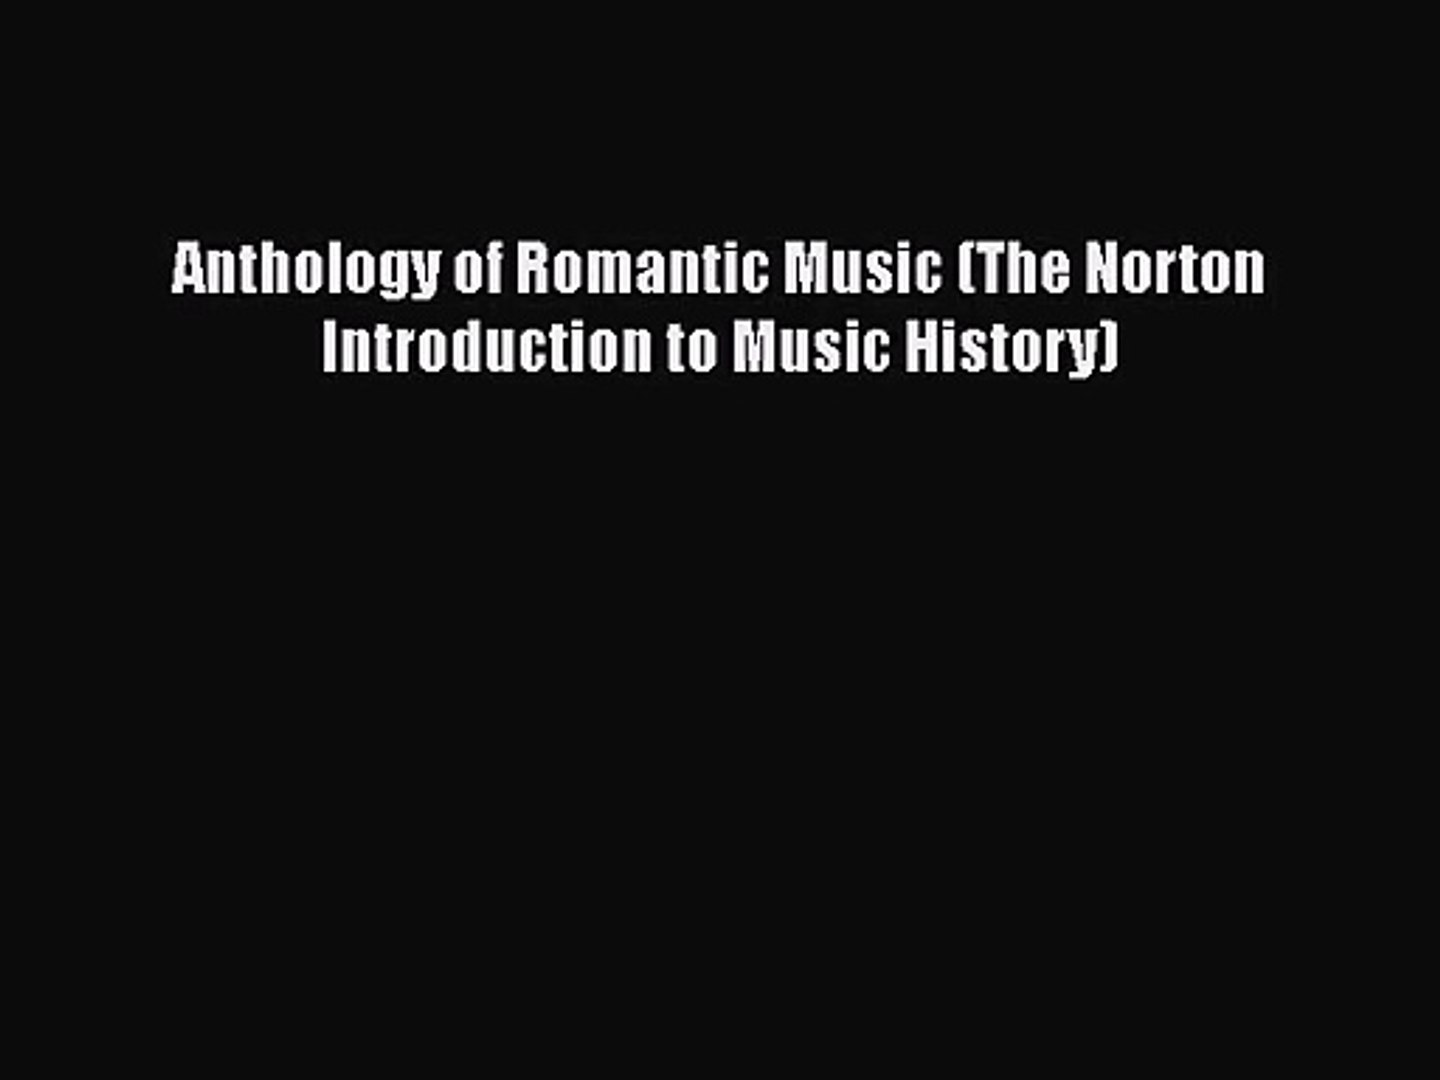 [PDF Download] Anthology of Romantic Music (The Norton Introduction to Music History) [Download]